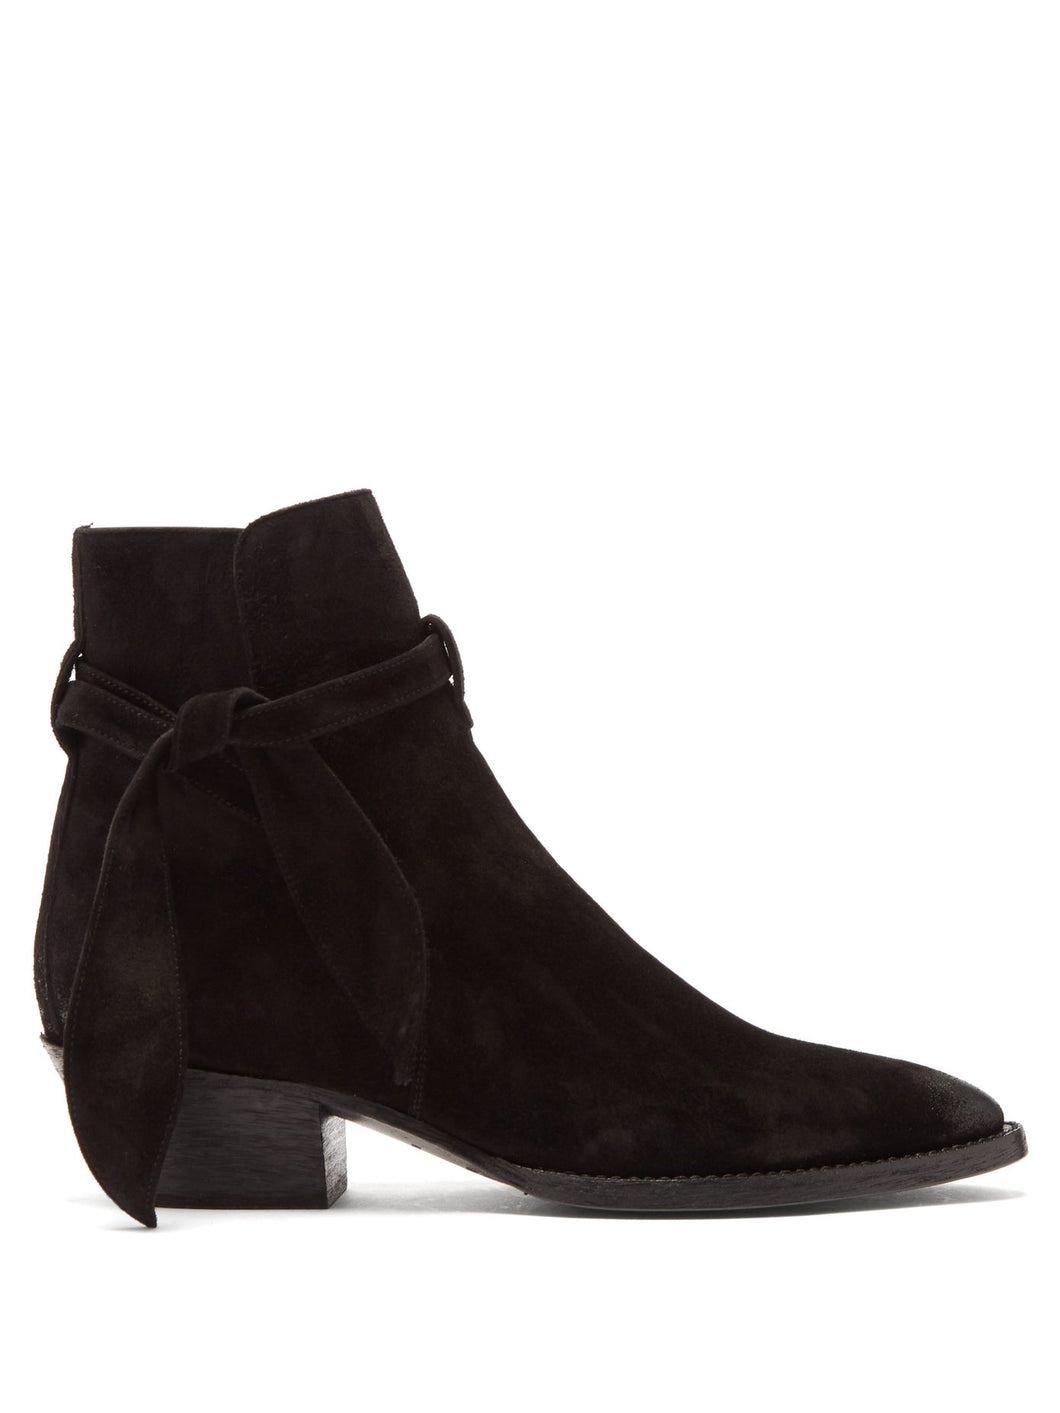 West tie-side suede ankle boots